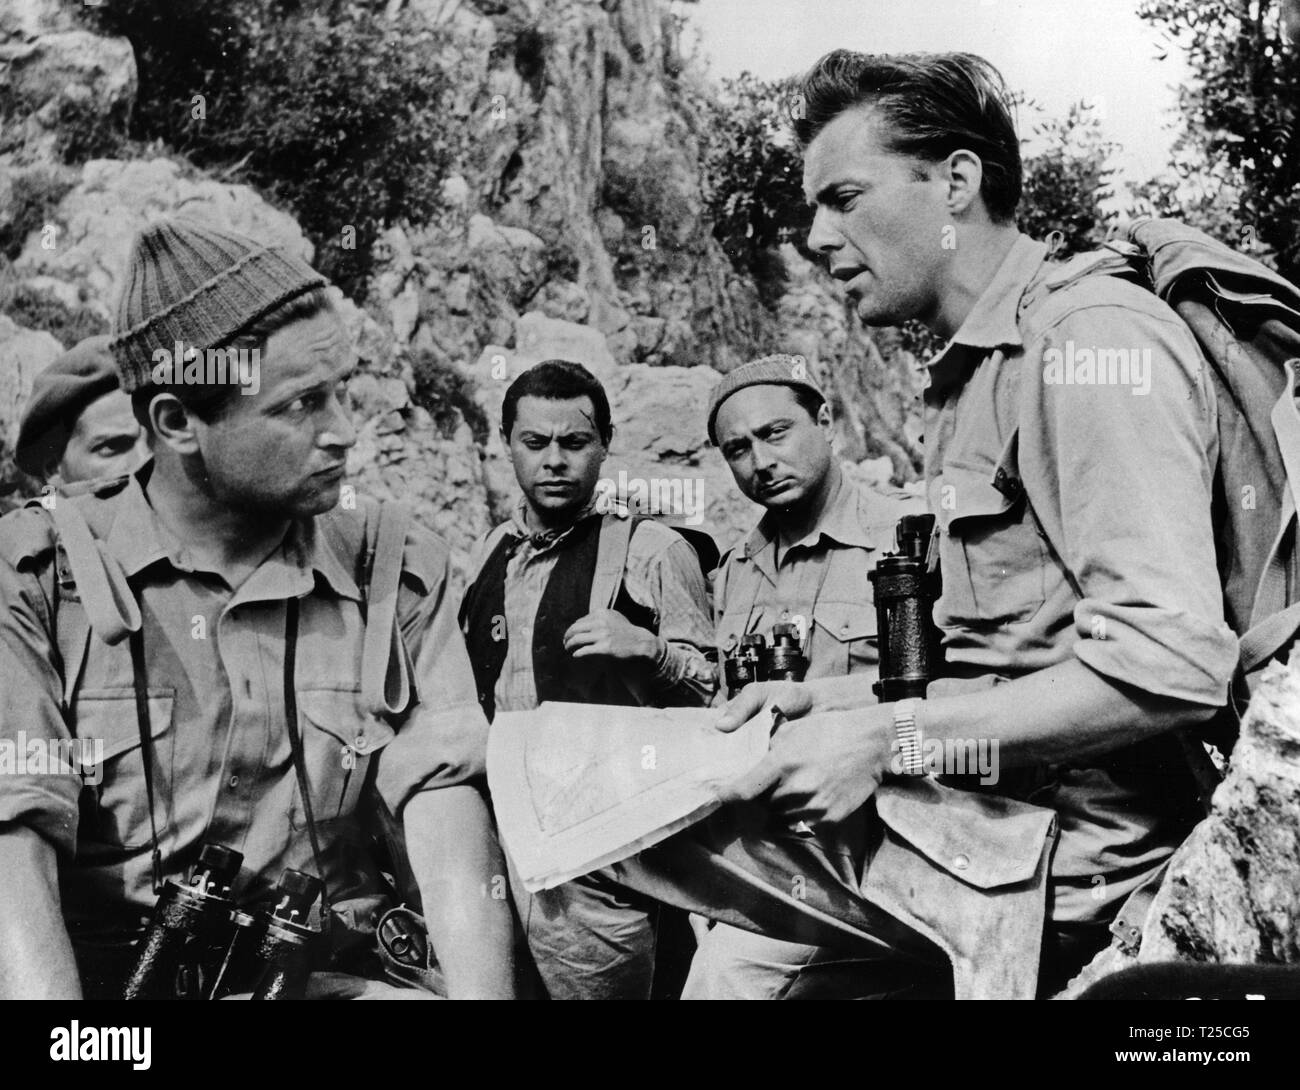 They Who Dare (1954) Denholm Elliott, Michael Mellinger, Gerard Oury, Dirk Bogarde,      Date: 1954 - Stock Image